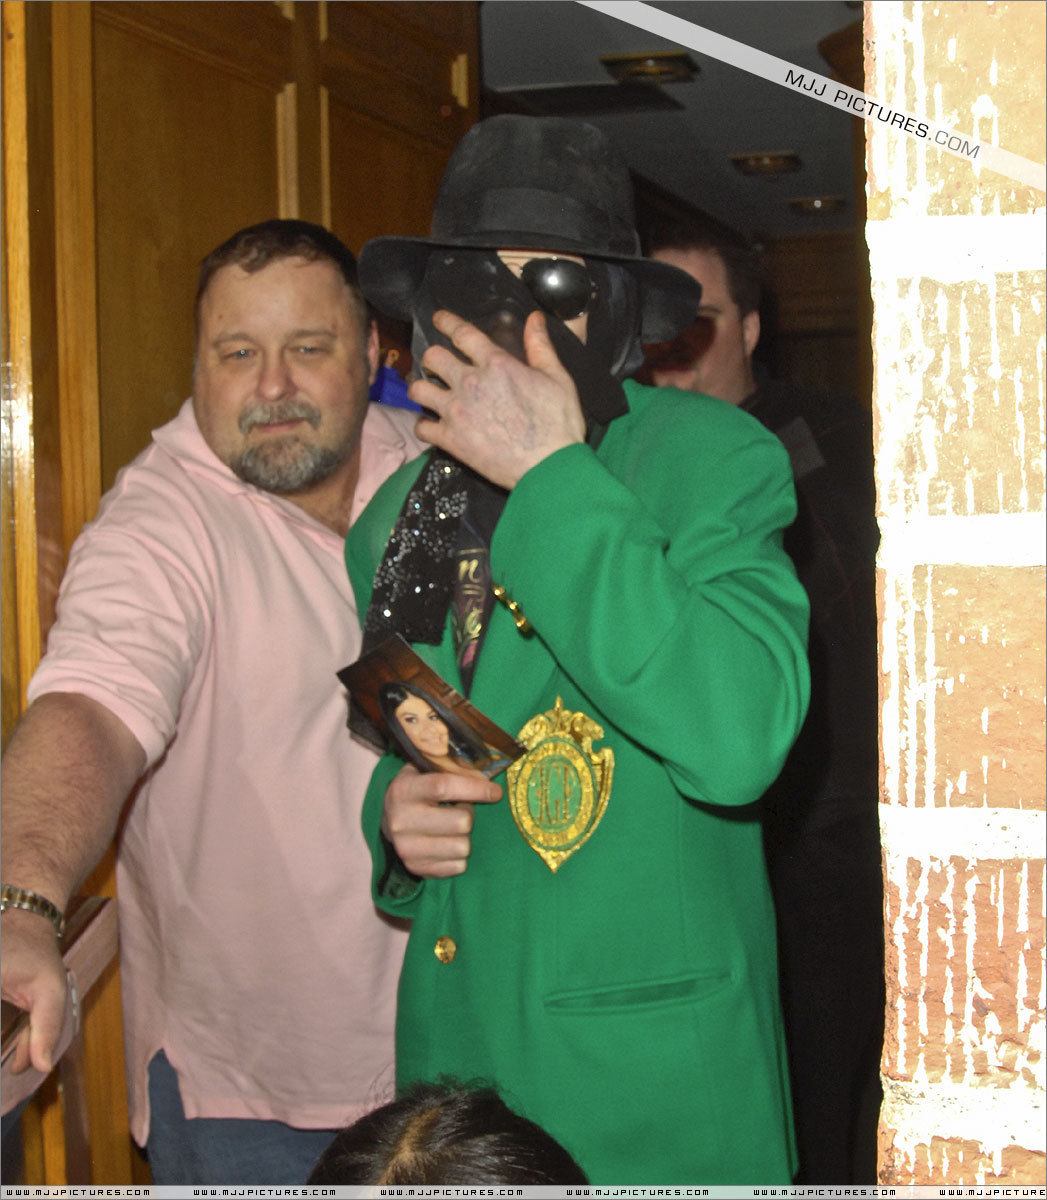 2009 > Various > Michael visits doctor